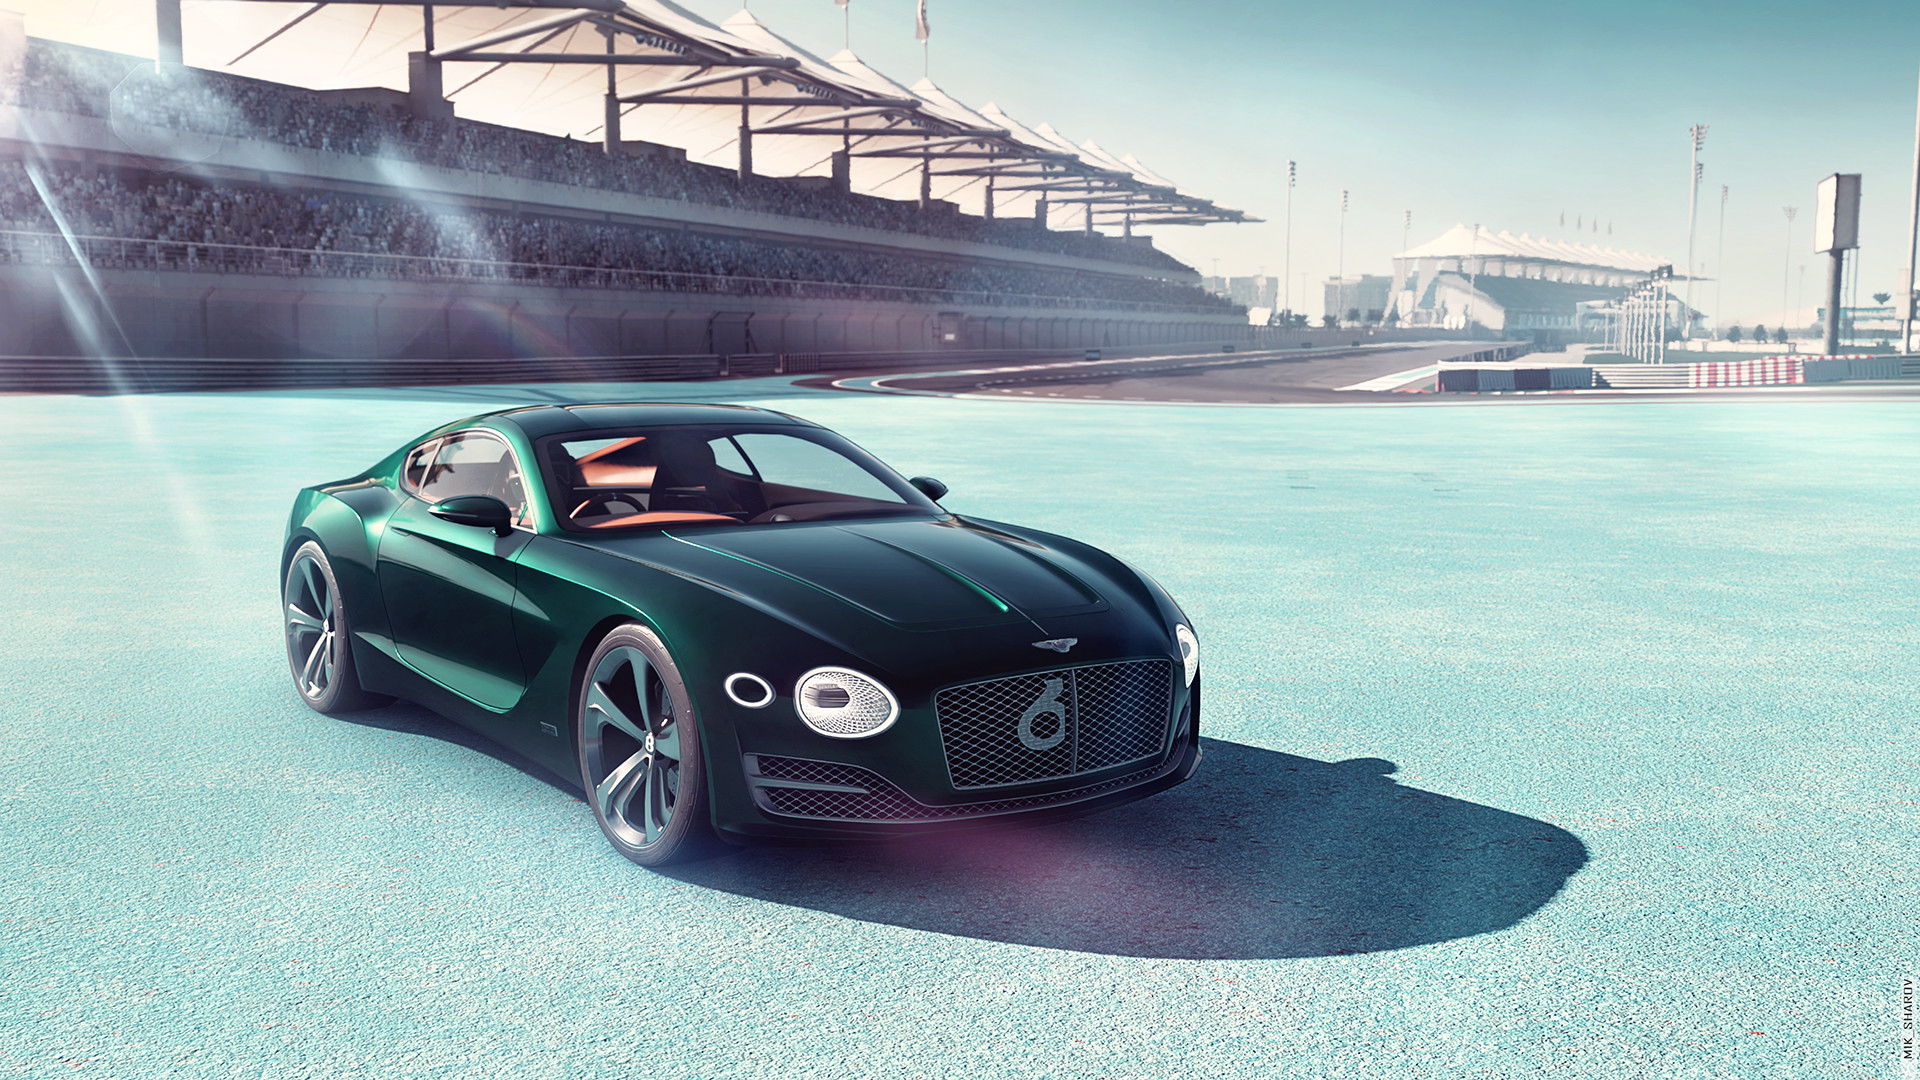 Bentley Exp 10 >> Mikhail Sharov Bentley Exp 10 Speed 6